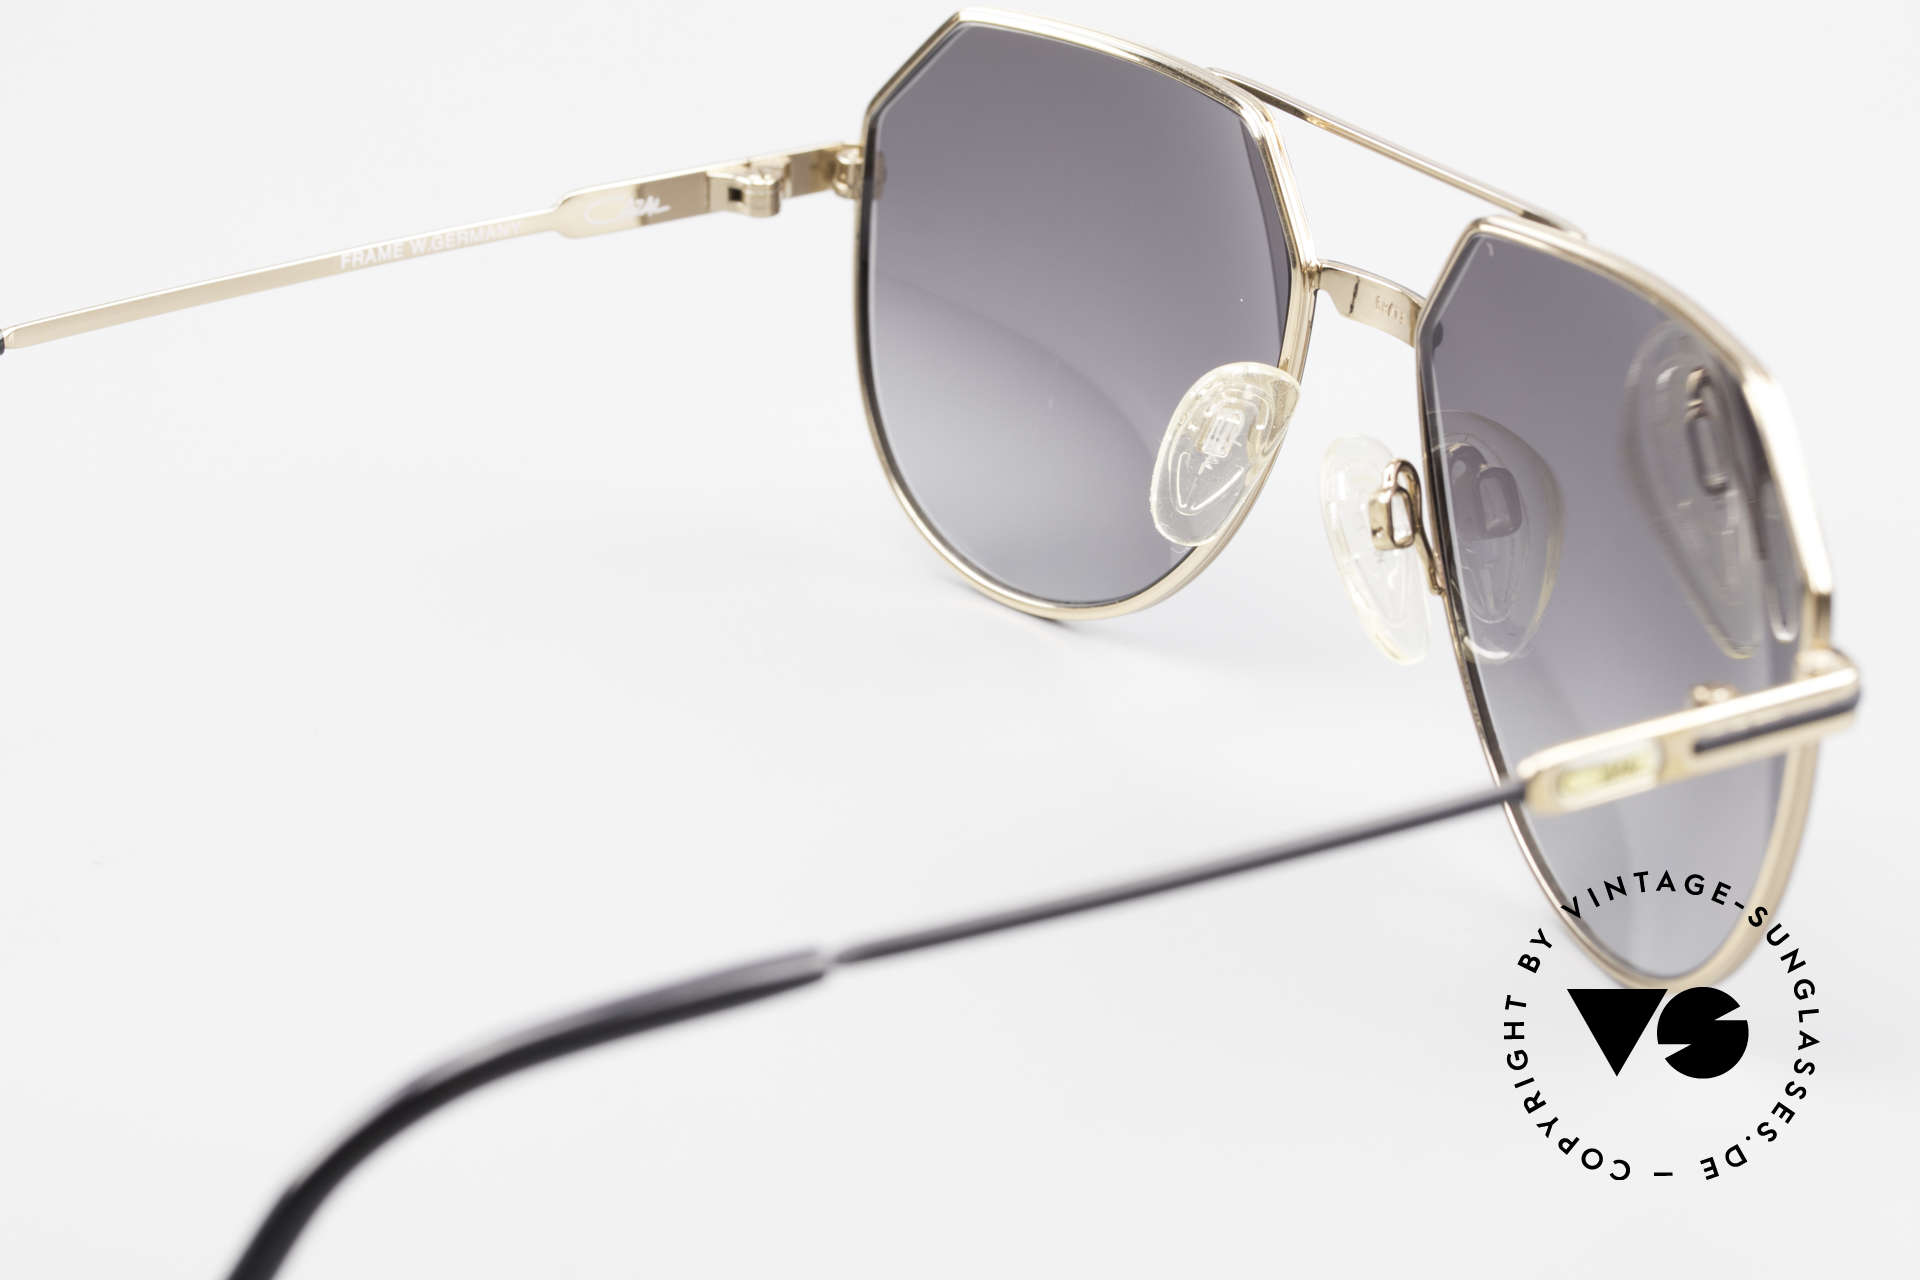 Cazal 724 West Germany Titan Cazal 80's, with gray-gradient sun lenses for 100% UV protection, Made for Men